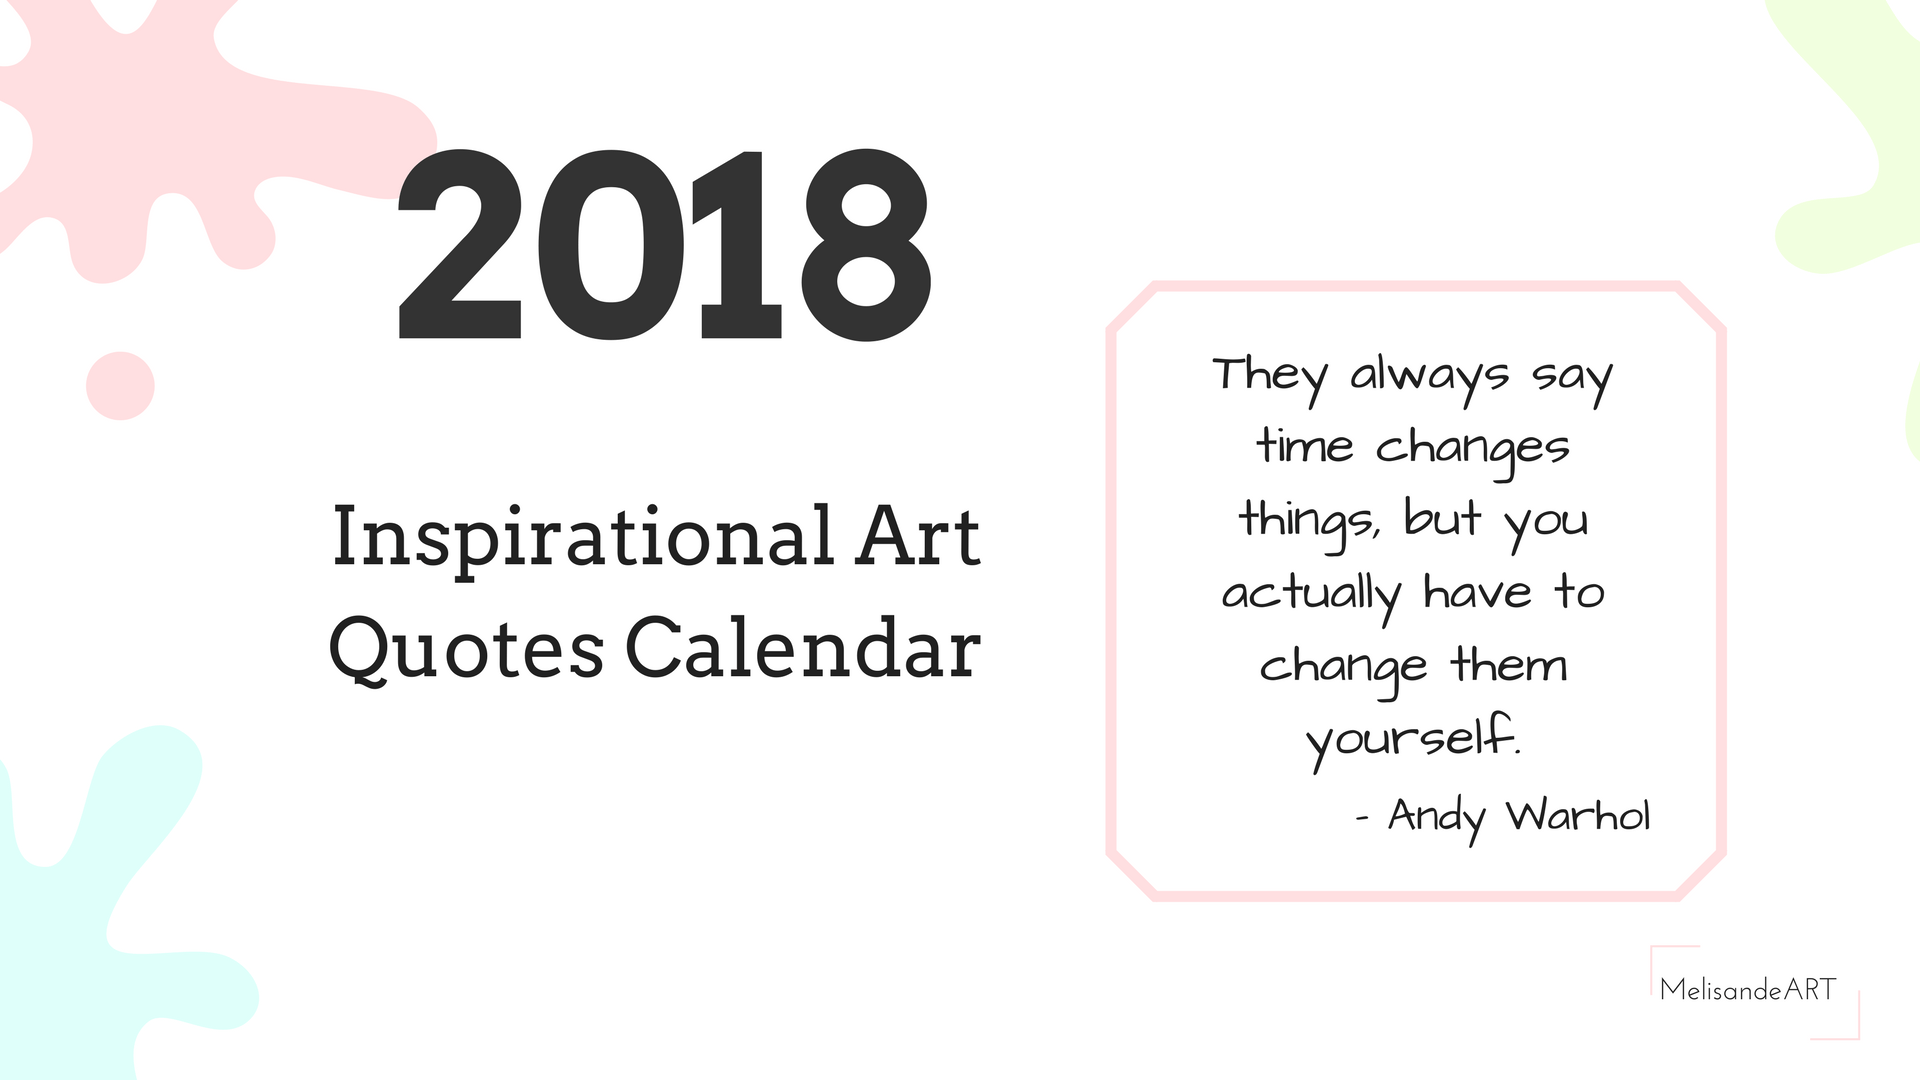 Quotes 2018 Calendar 2018 Inspirational Art Quotes Calendar  Melisandeart